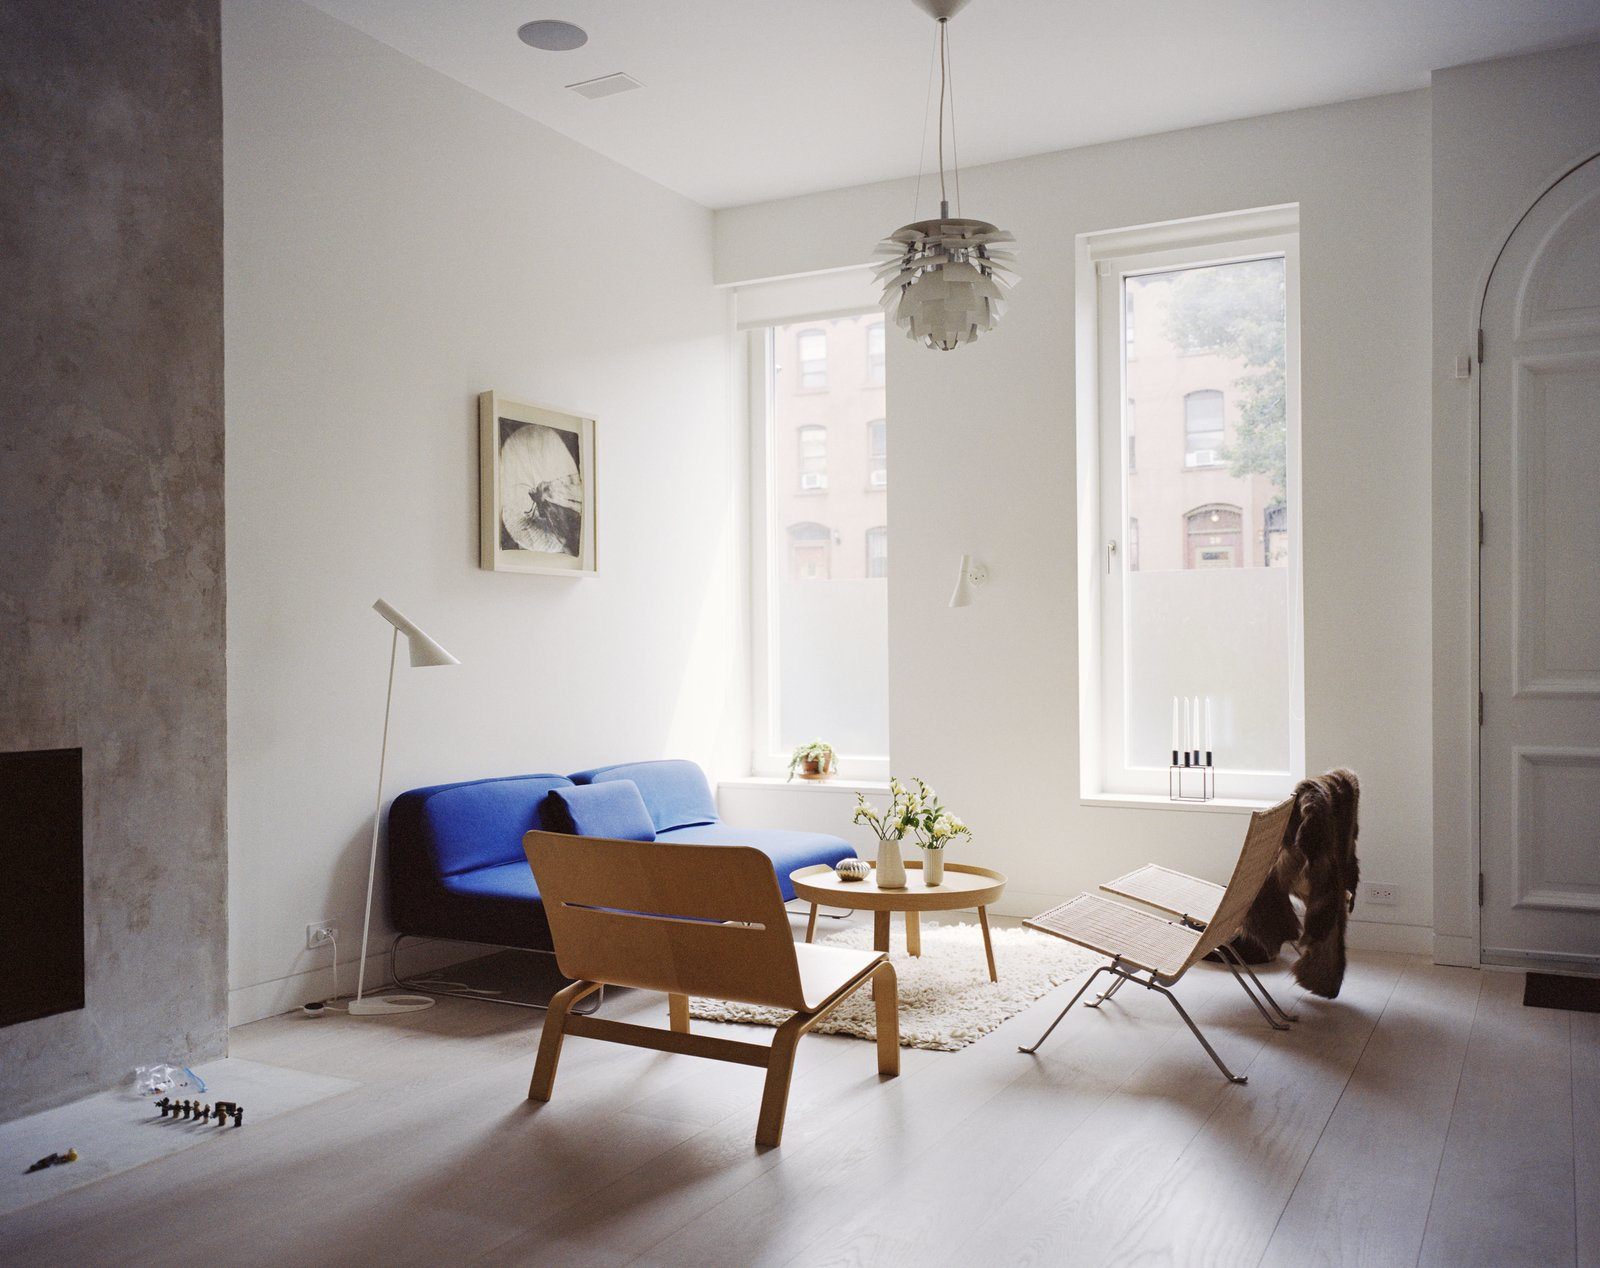 Our Scandinavian Style Dreams Come True in This Brooklyn Town House - Photo 1 of 10